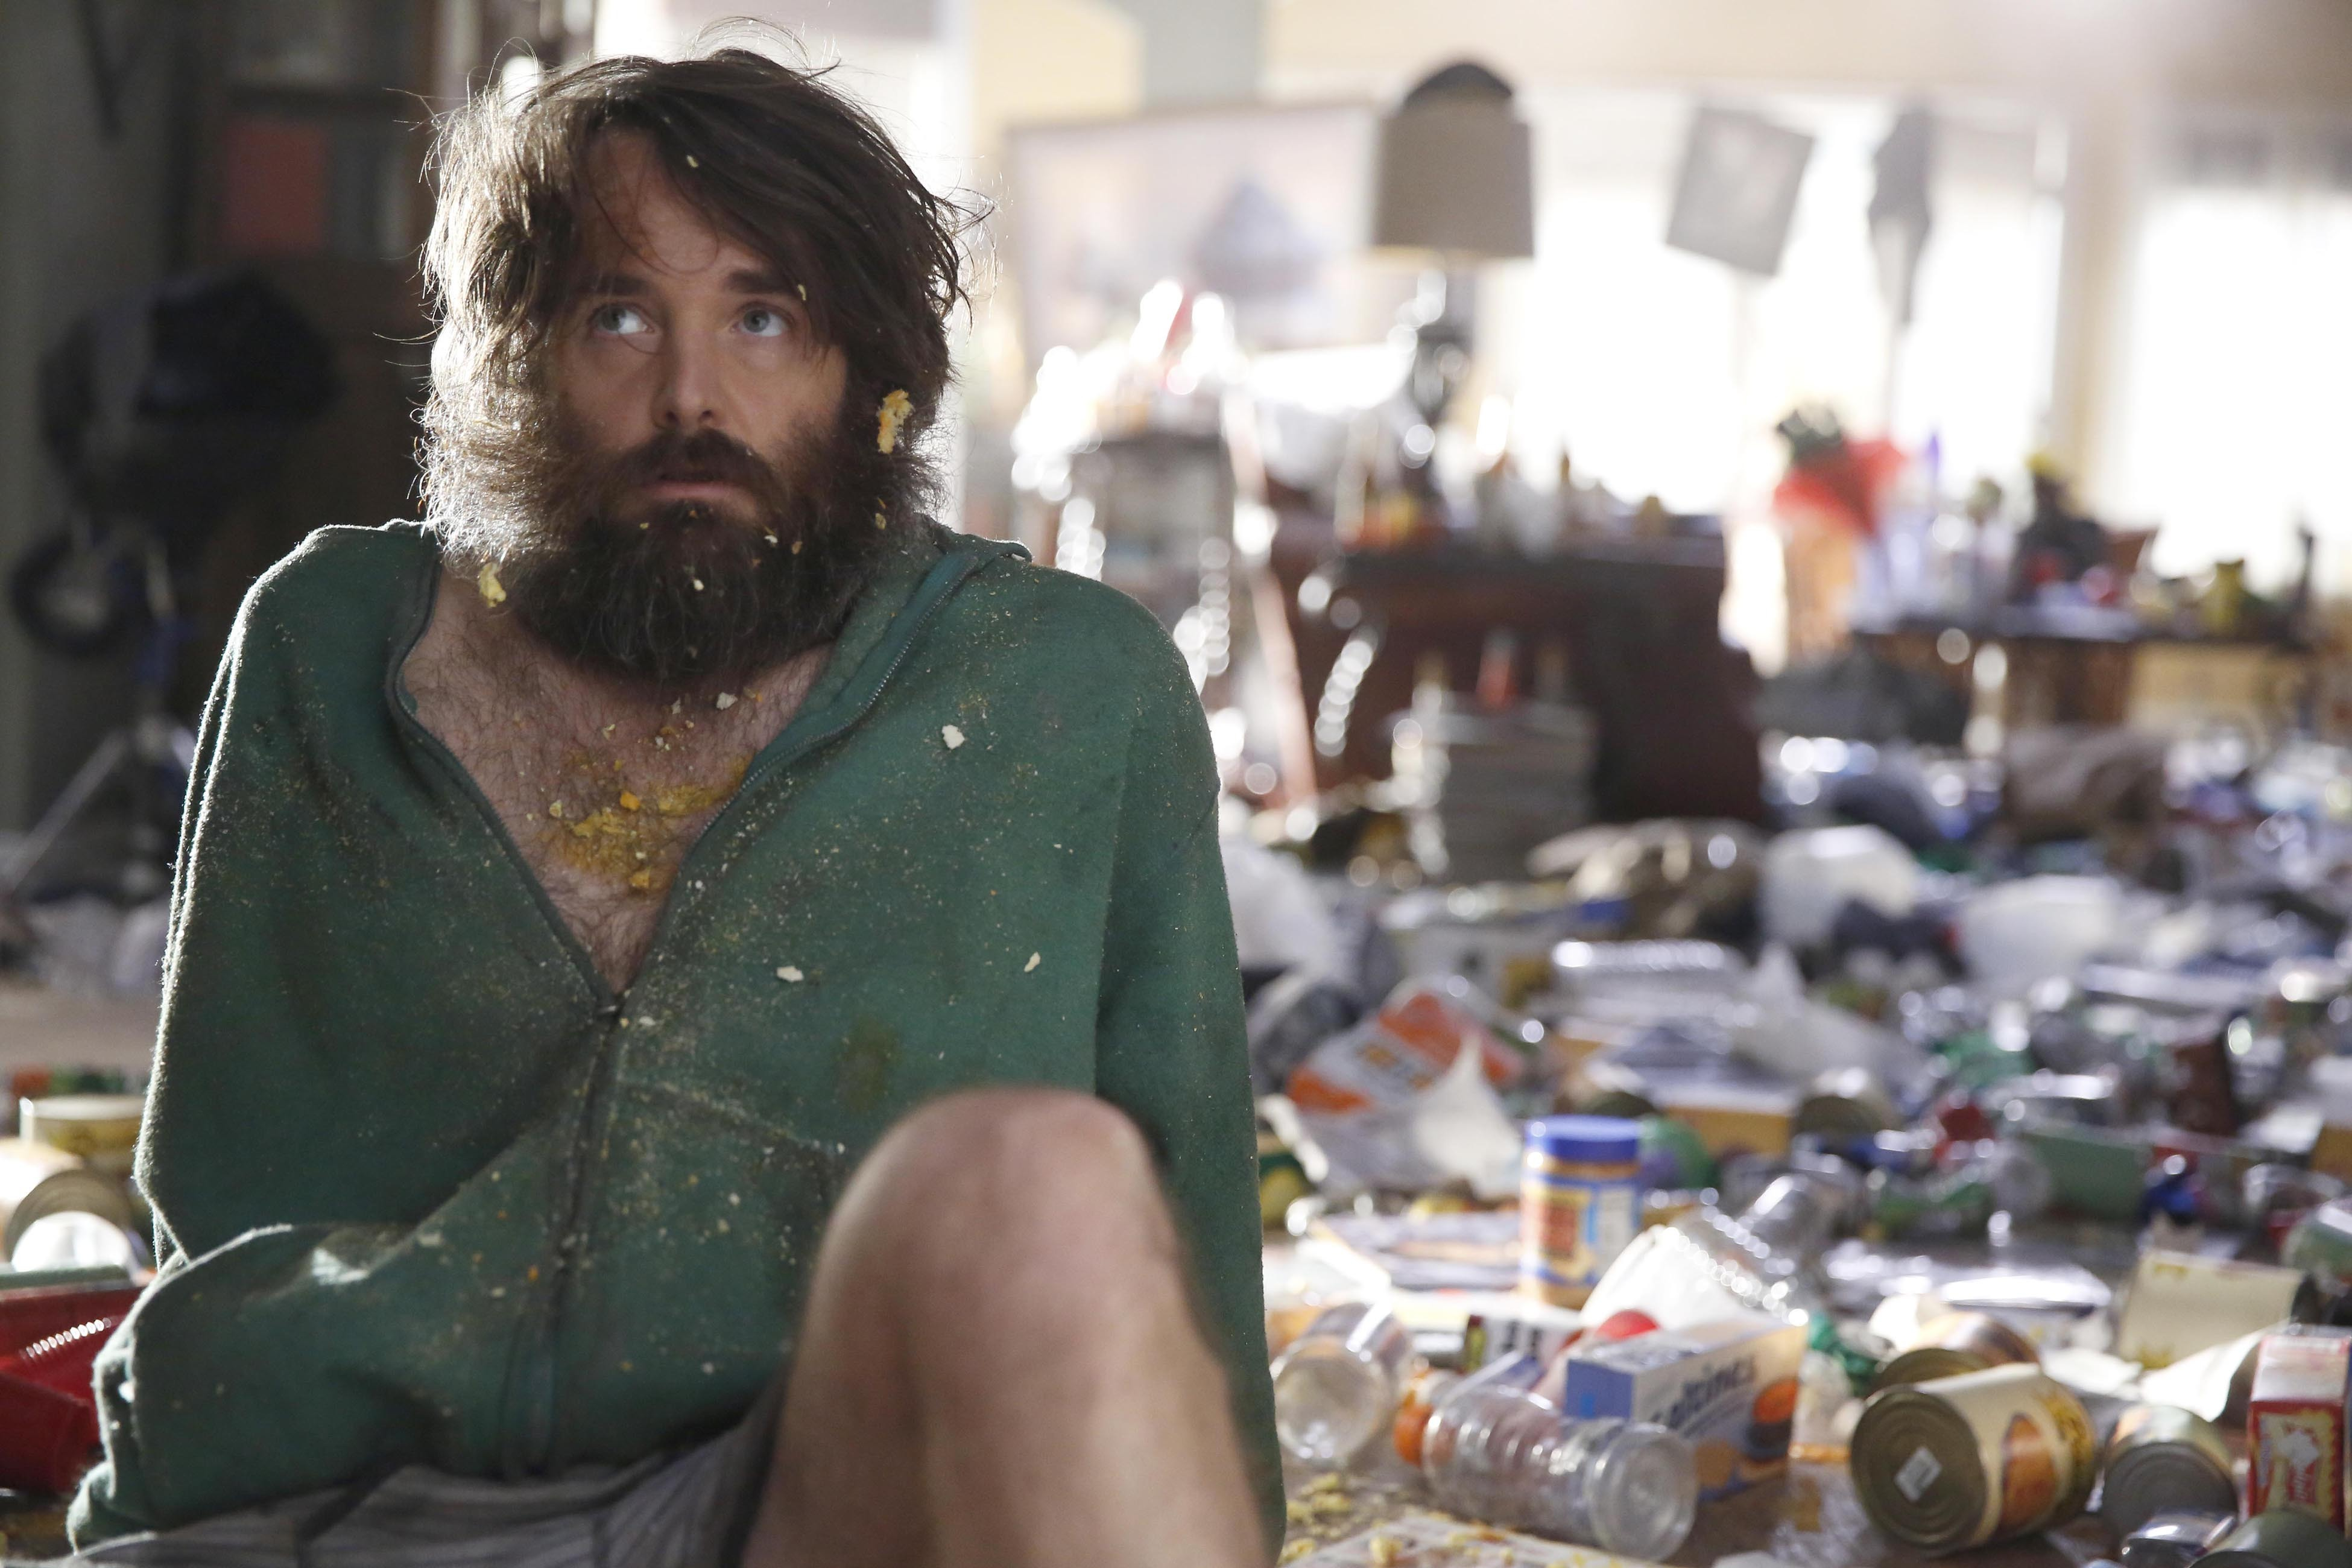 Will Forte as Phil Miller. THE LAST MAN ON EARTH is set for a special One-Hour Season Premiere Event, Sunday, March 1 (9:00-10:00 PM ET/PT) and makes its time period premiere Sunday, March 8 (9:30-10:00 PM ET/PT) on FOX. ©2014 Fox Broadcasting Co. Cr: Jordin Althaus/FOX